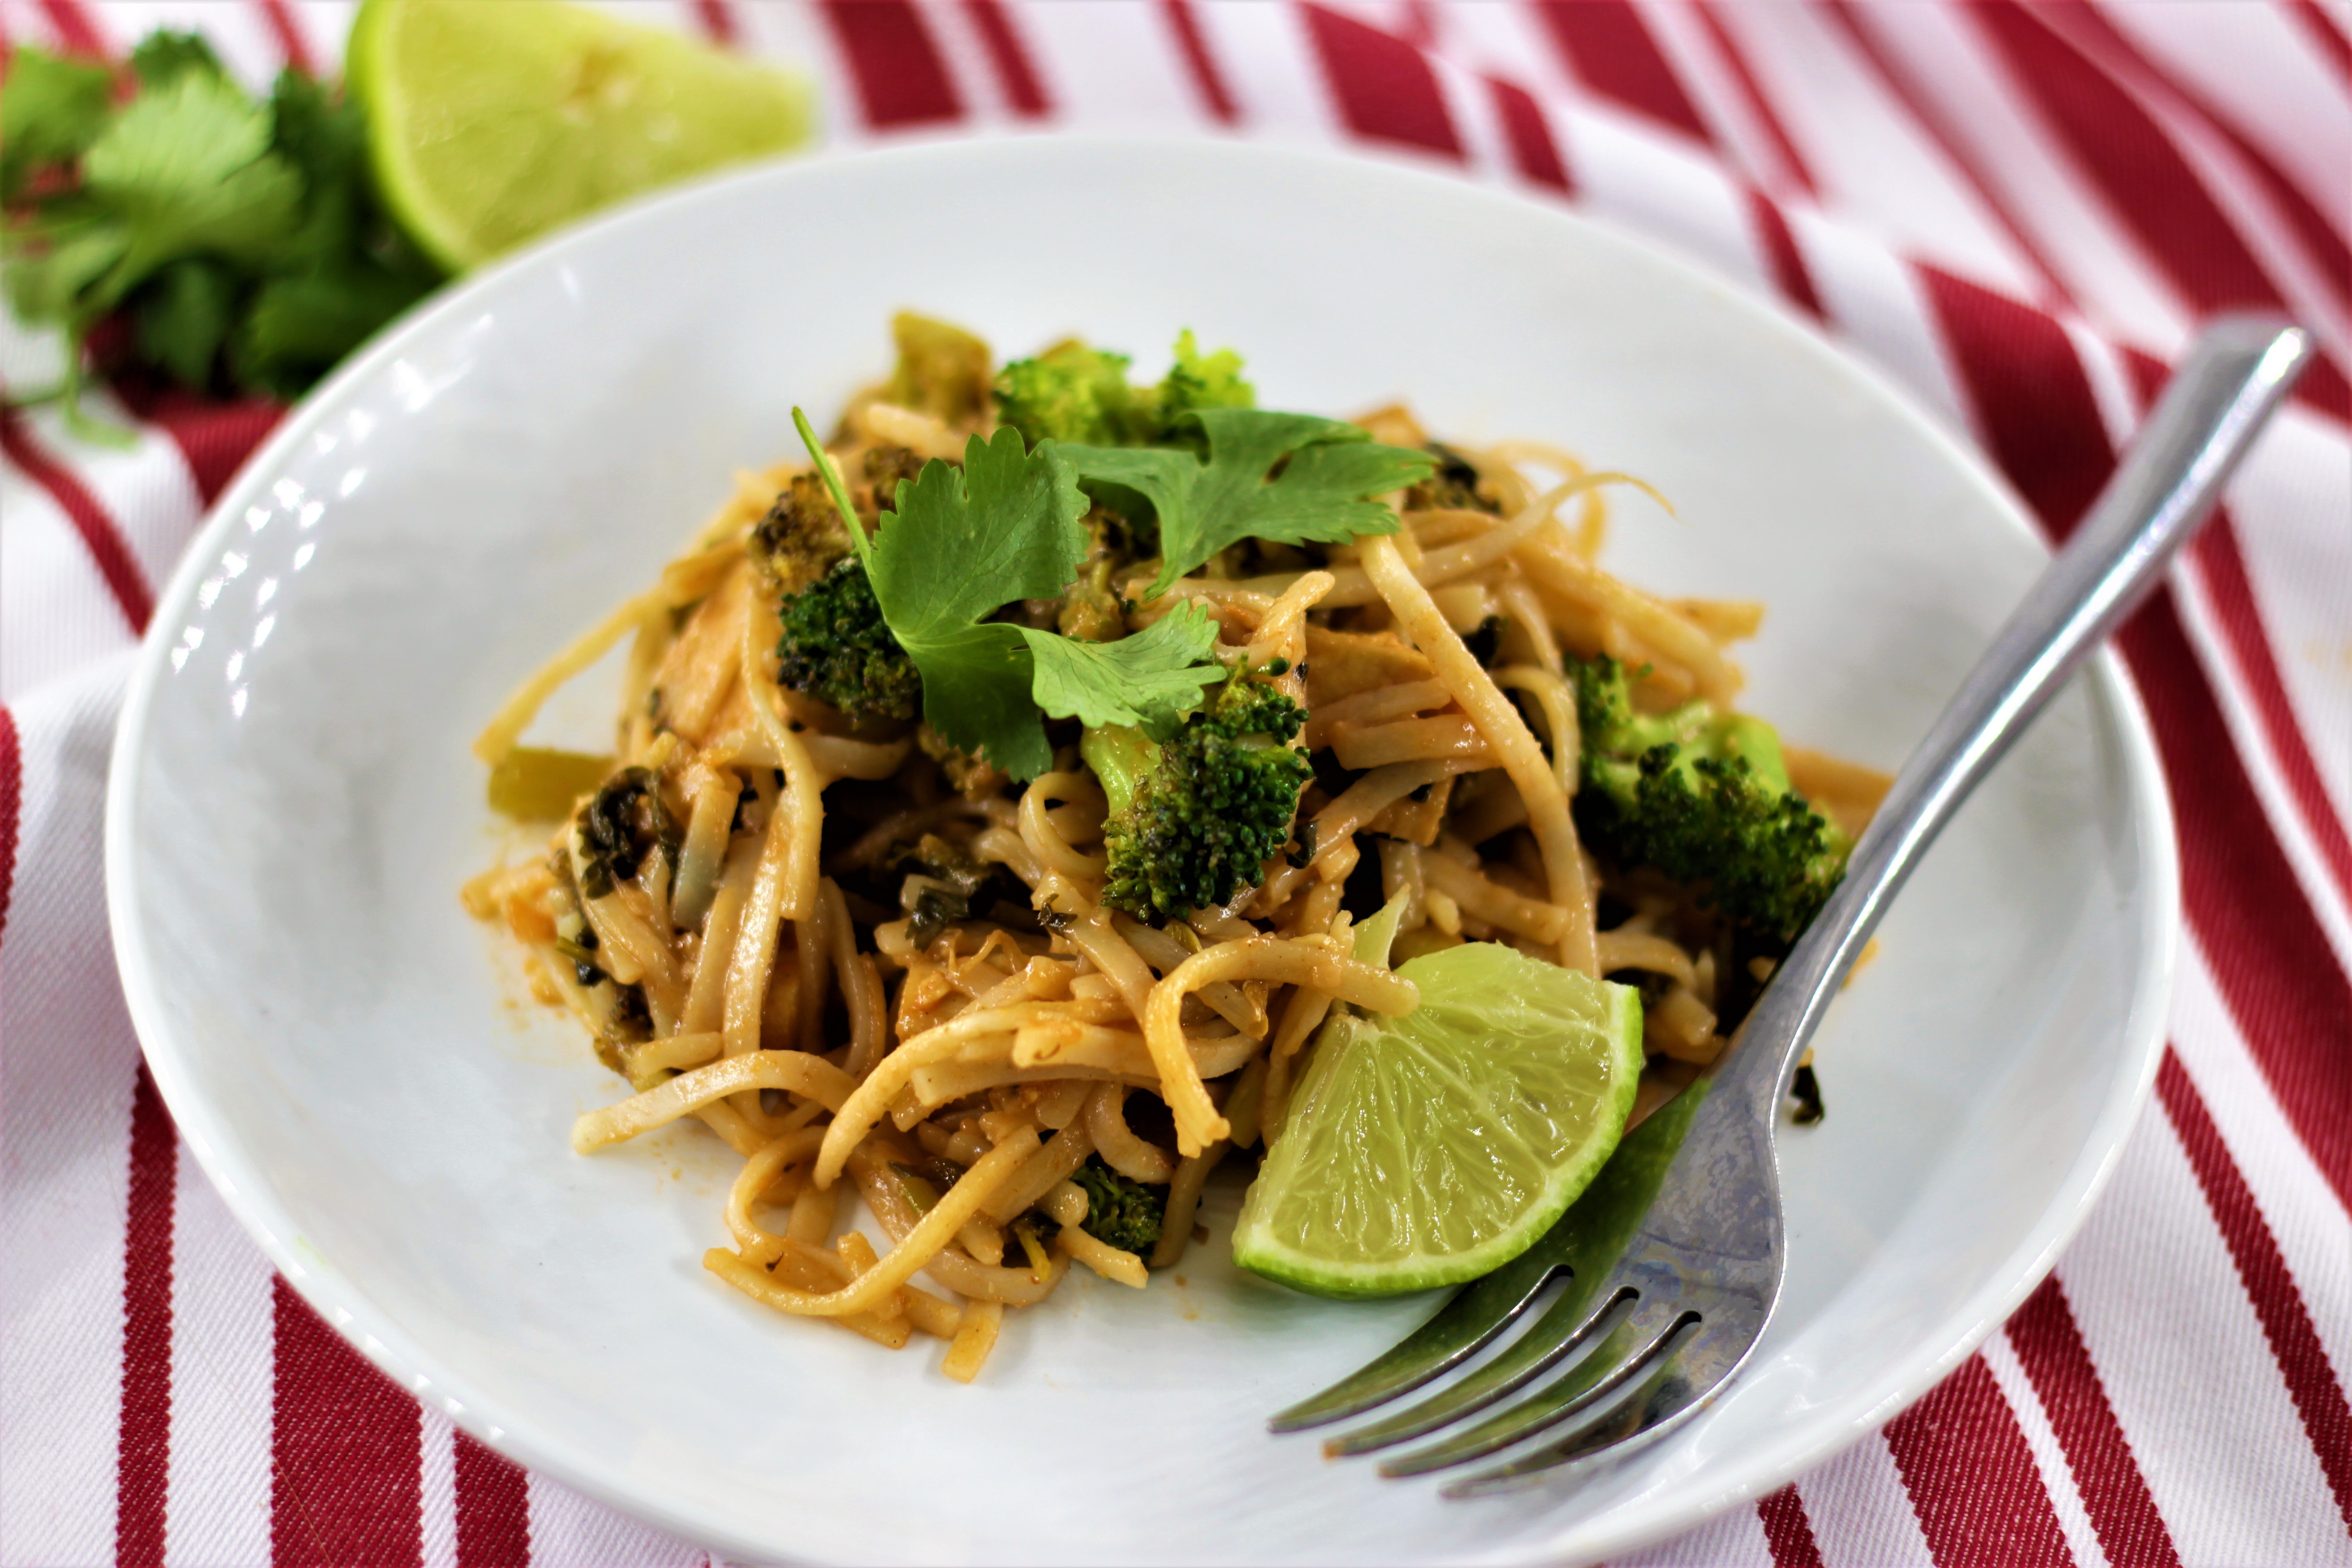 Tofu Pad Thai with broccoli on a white plate with a fork and lime wedge